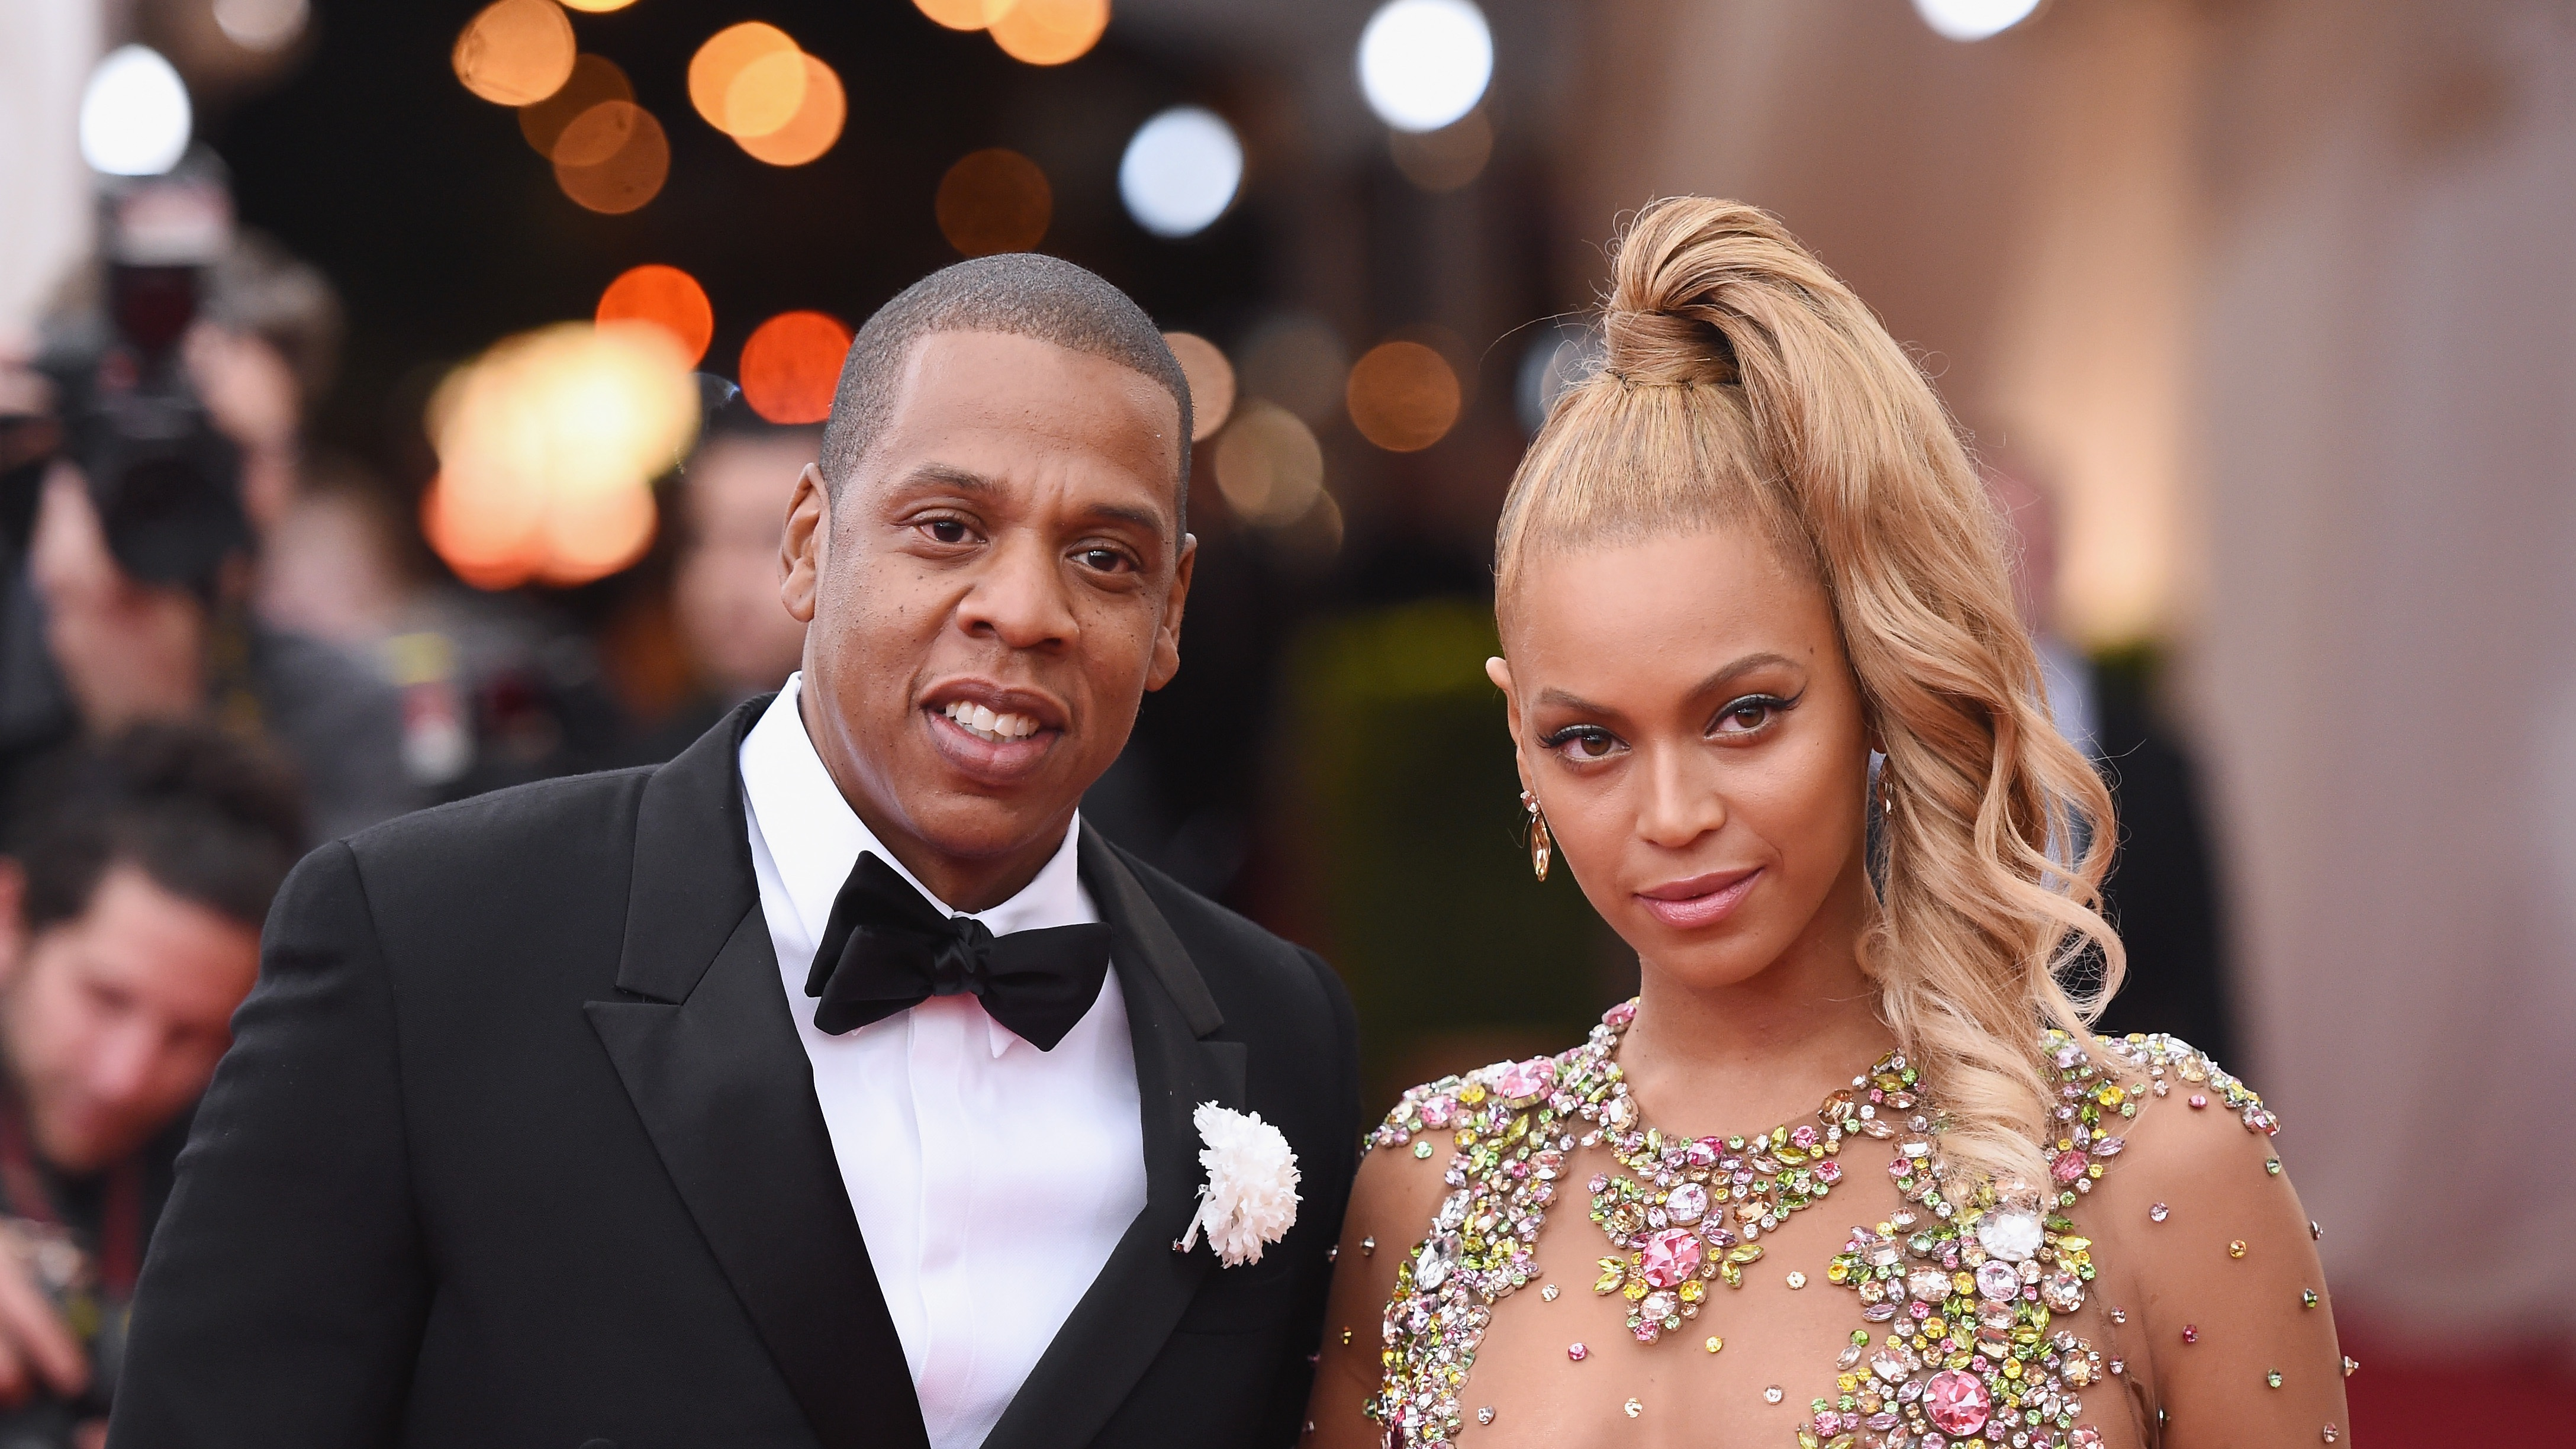 Is Beyoncé Skipping the Met Gala? The Queen Is Nowhere in Sight on Fashion's Biggest Night!